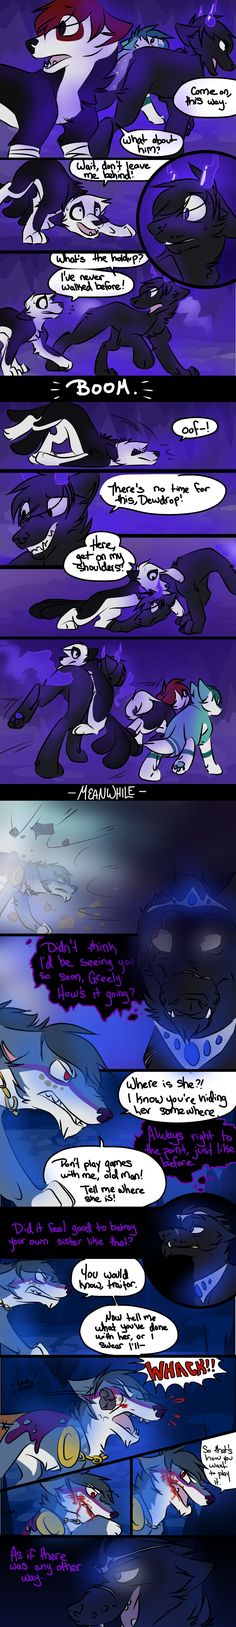 The Beginning of an Era Page 25 by Loopy44 on DeviantArt